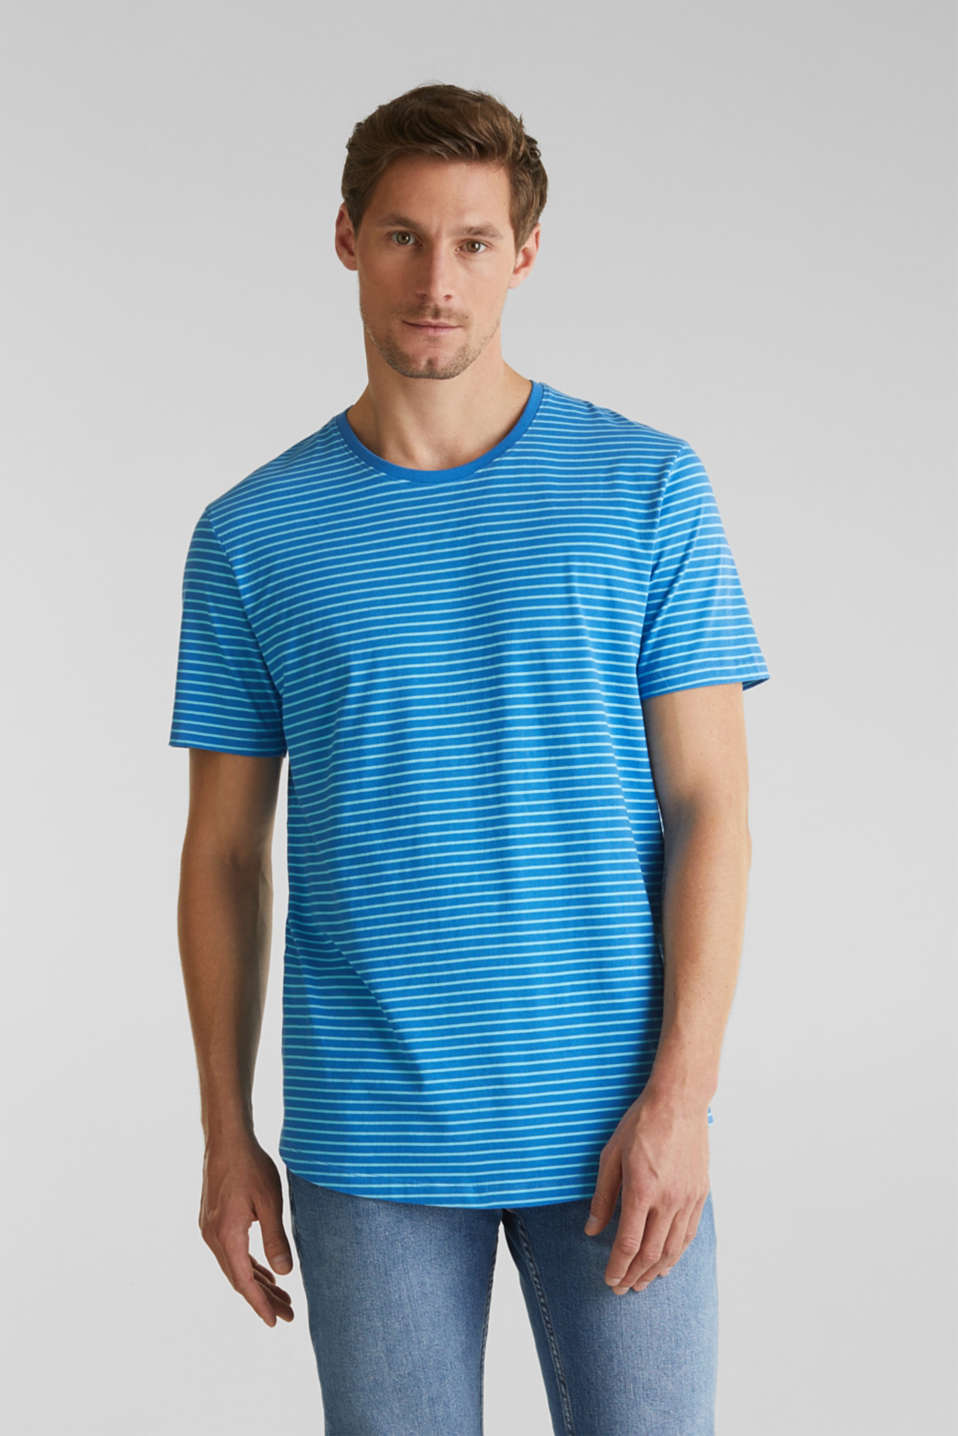 Jersey T-shirt with stripes, 100% cotton, BLUE 3, detail image number 0